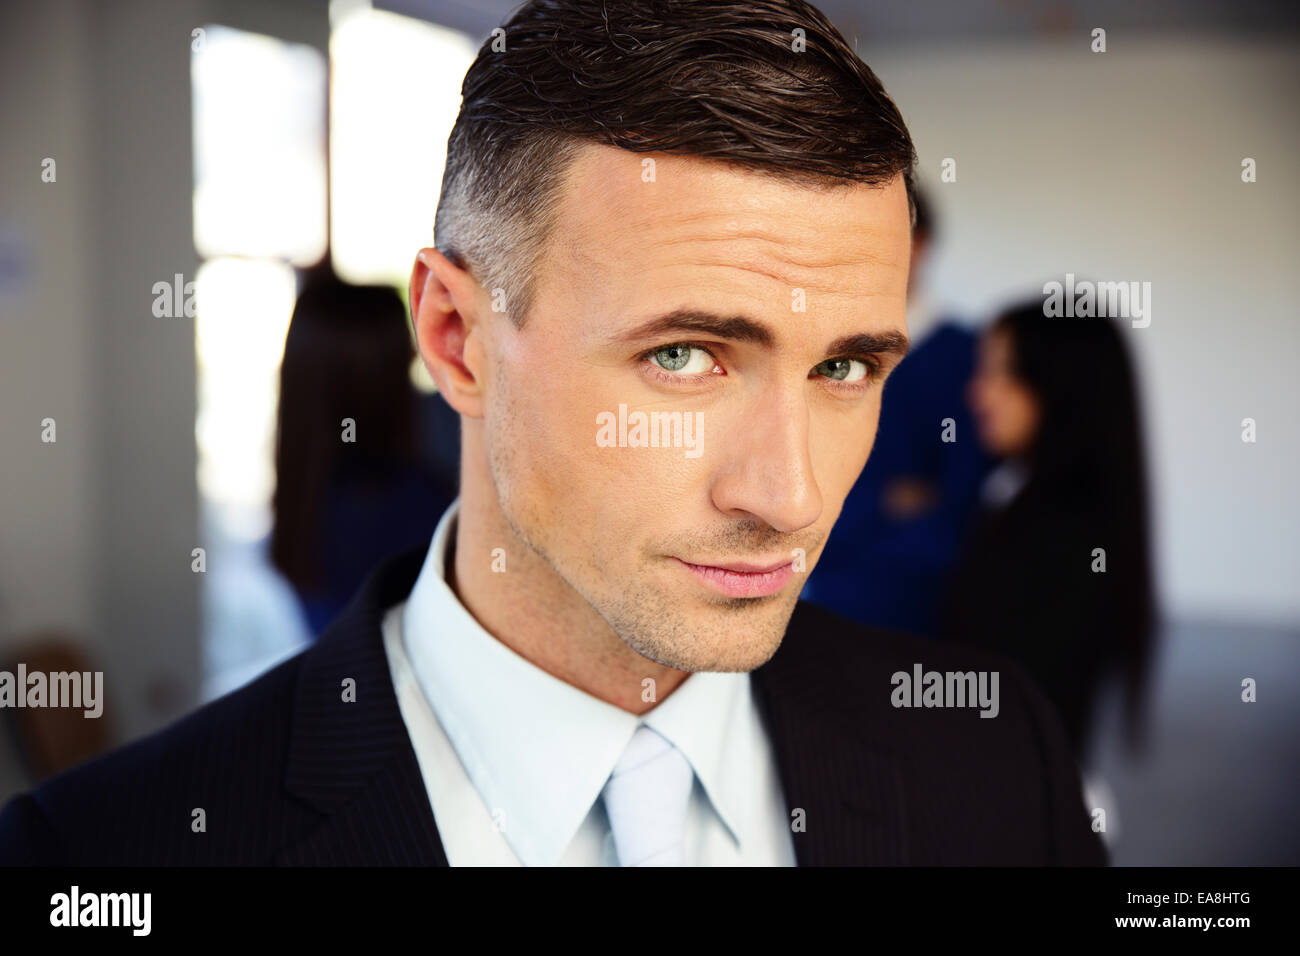 Portrait of a handsome serious businessman Photo Stock